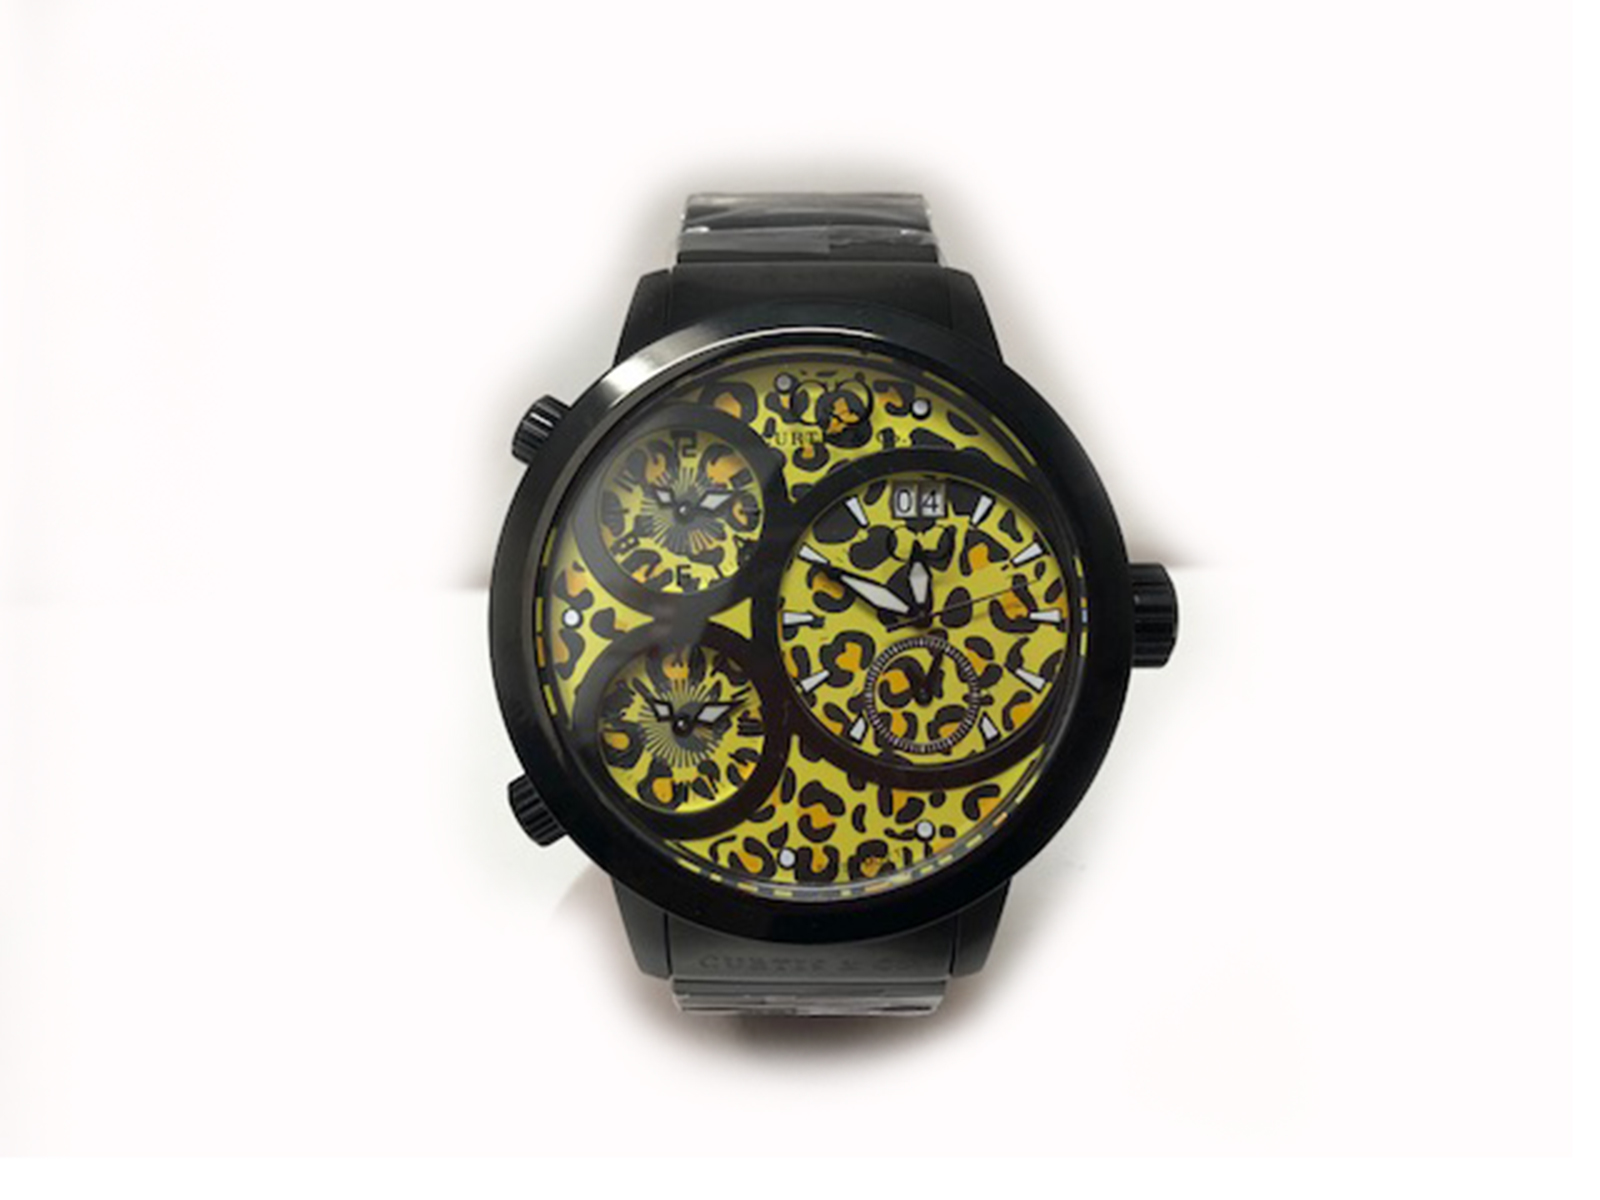 CURTIS&Co.(カーティス)The BIG Time WORLD 57mm YELLOW Leopard Dial SW57LY-B クオーツ SS ラバーベルト イエロー レオパード メンズ腕時計【中古】